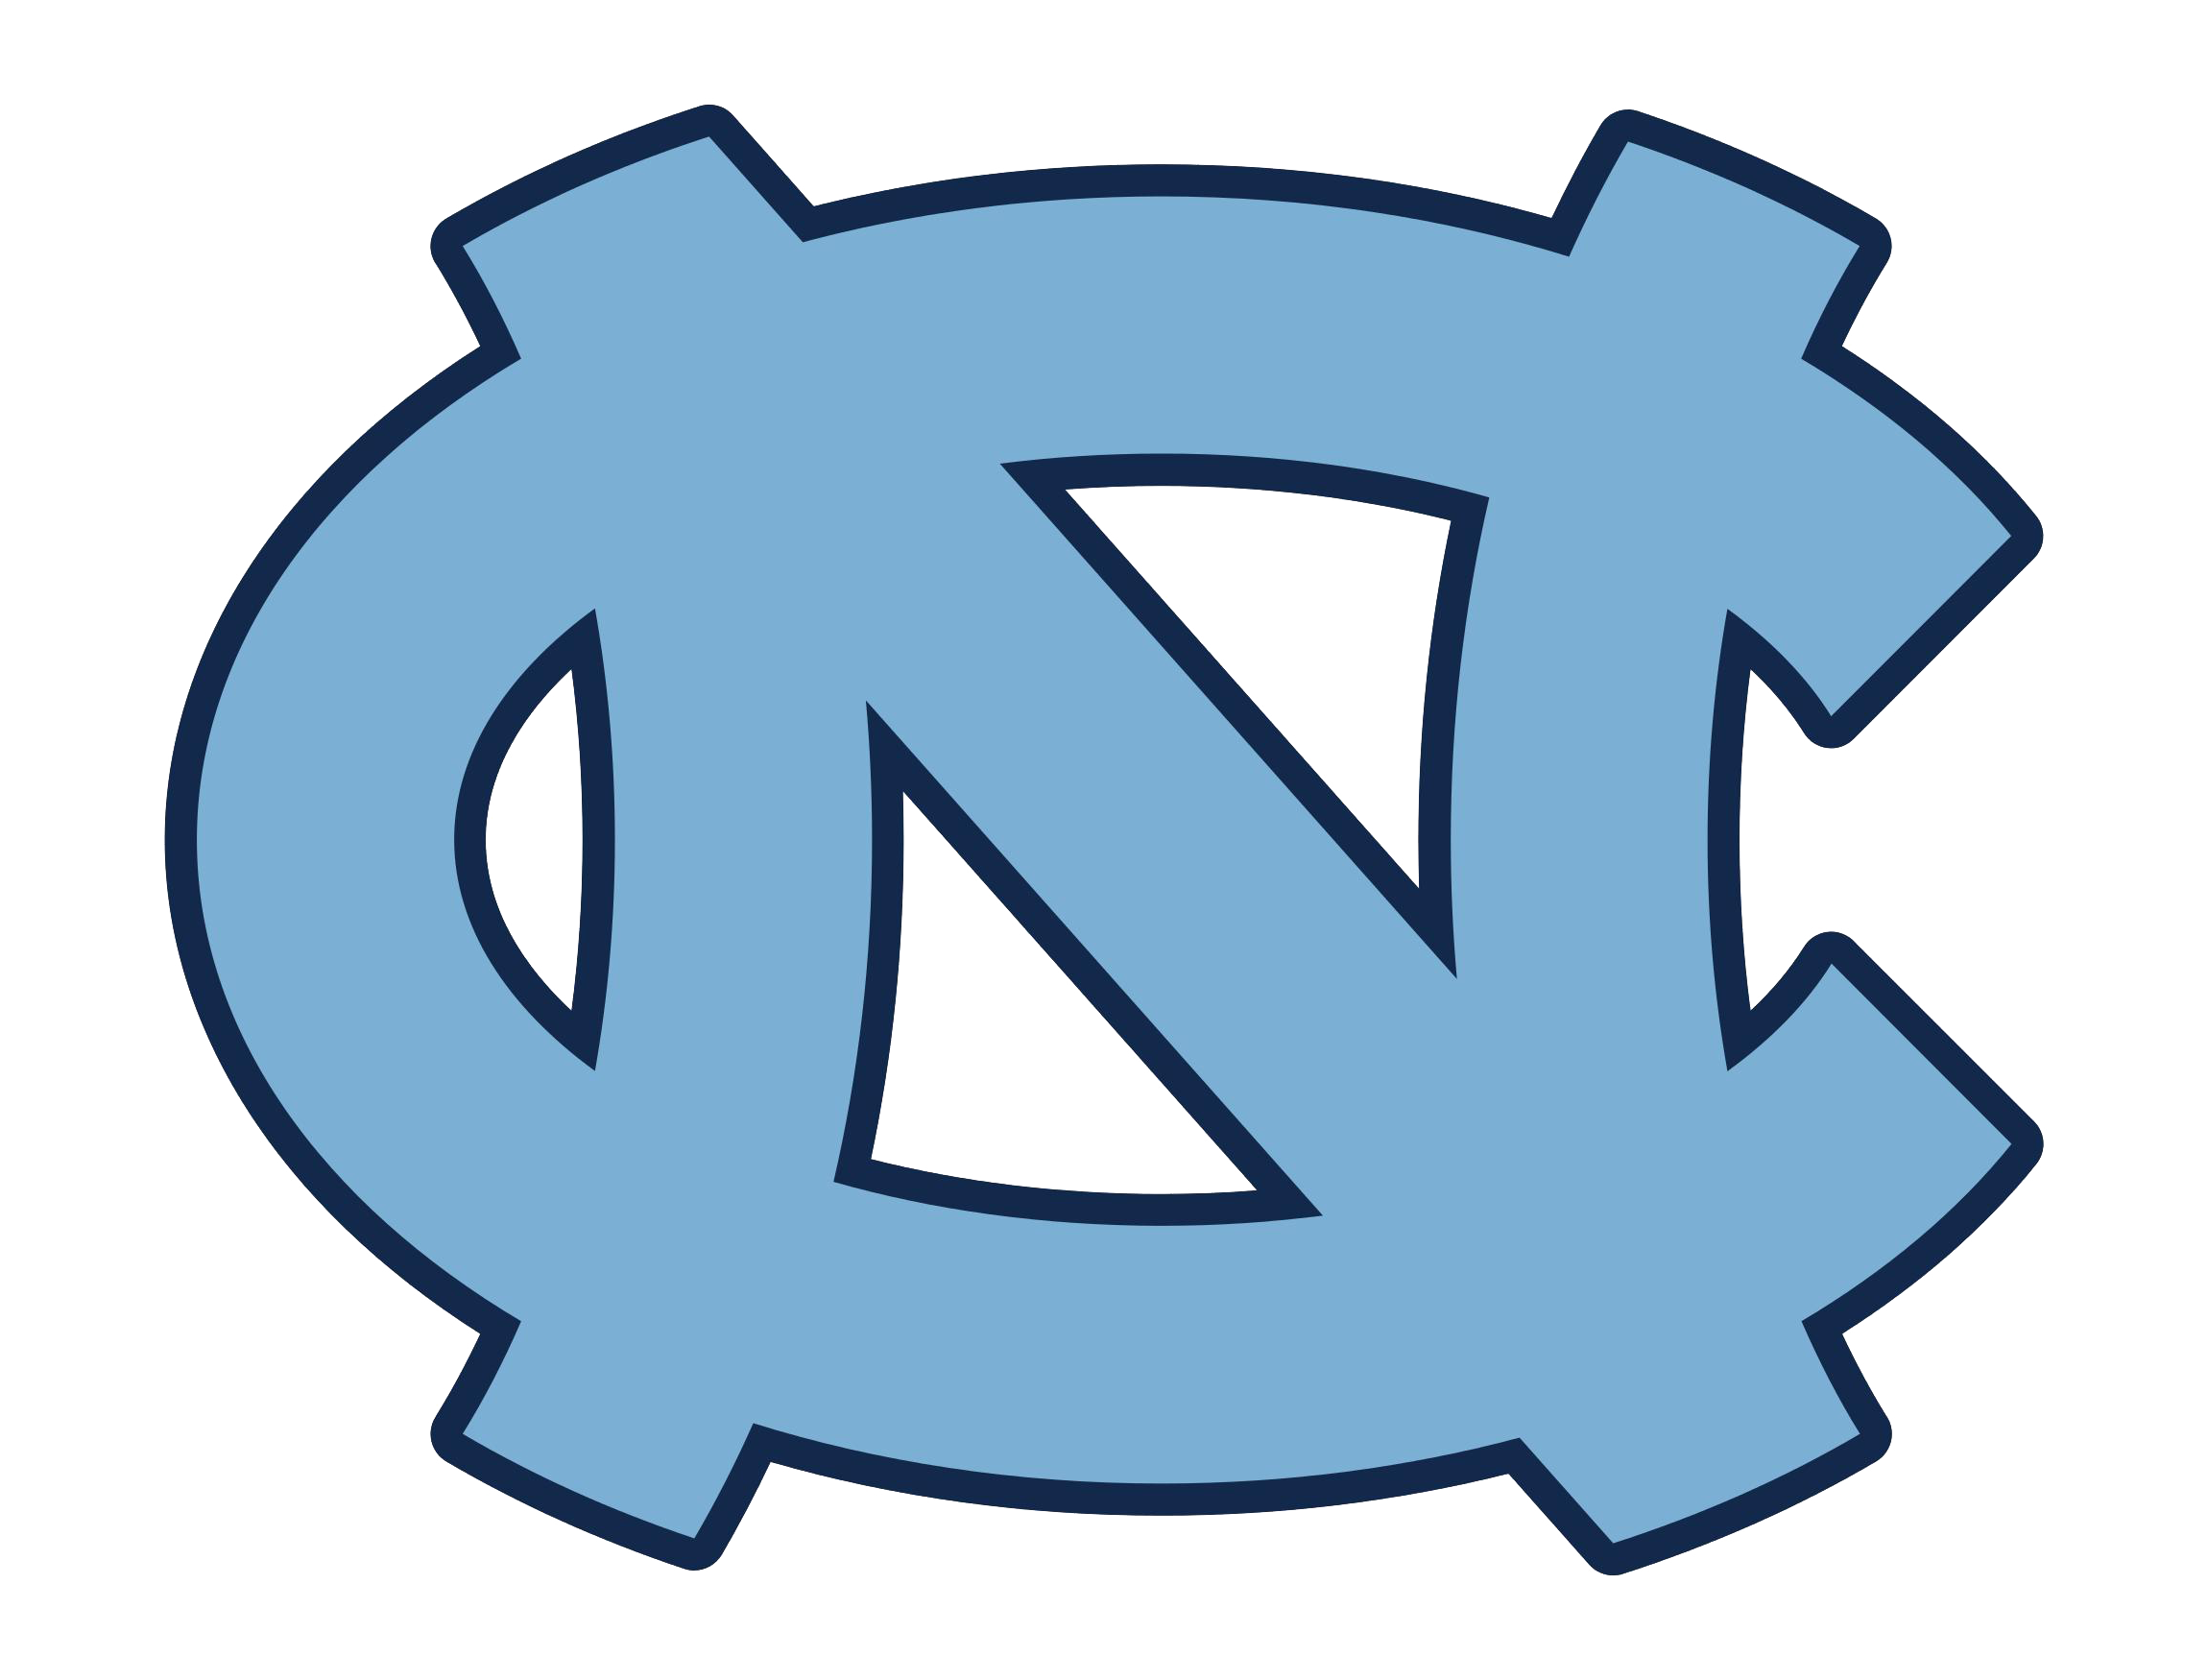 North carolina logo north carolina symbol meaning history and north carolina logo buycottarizona